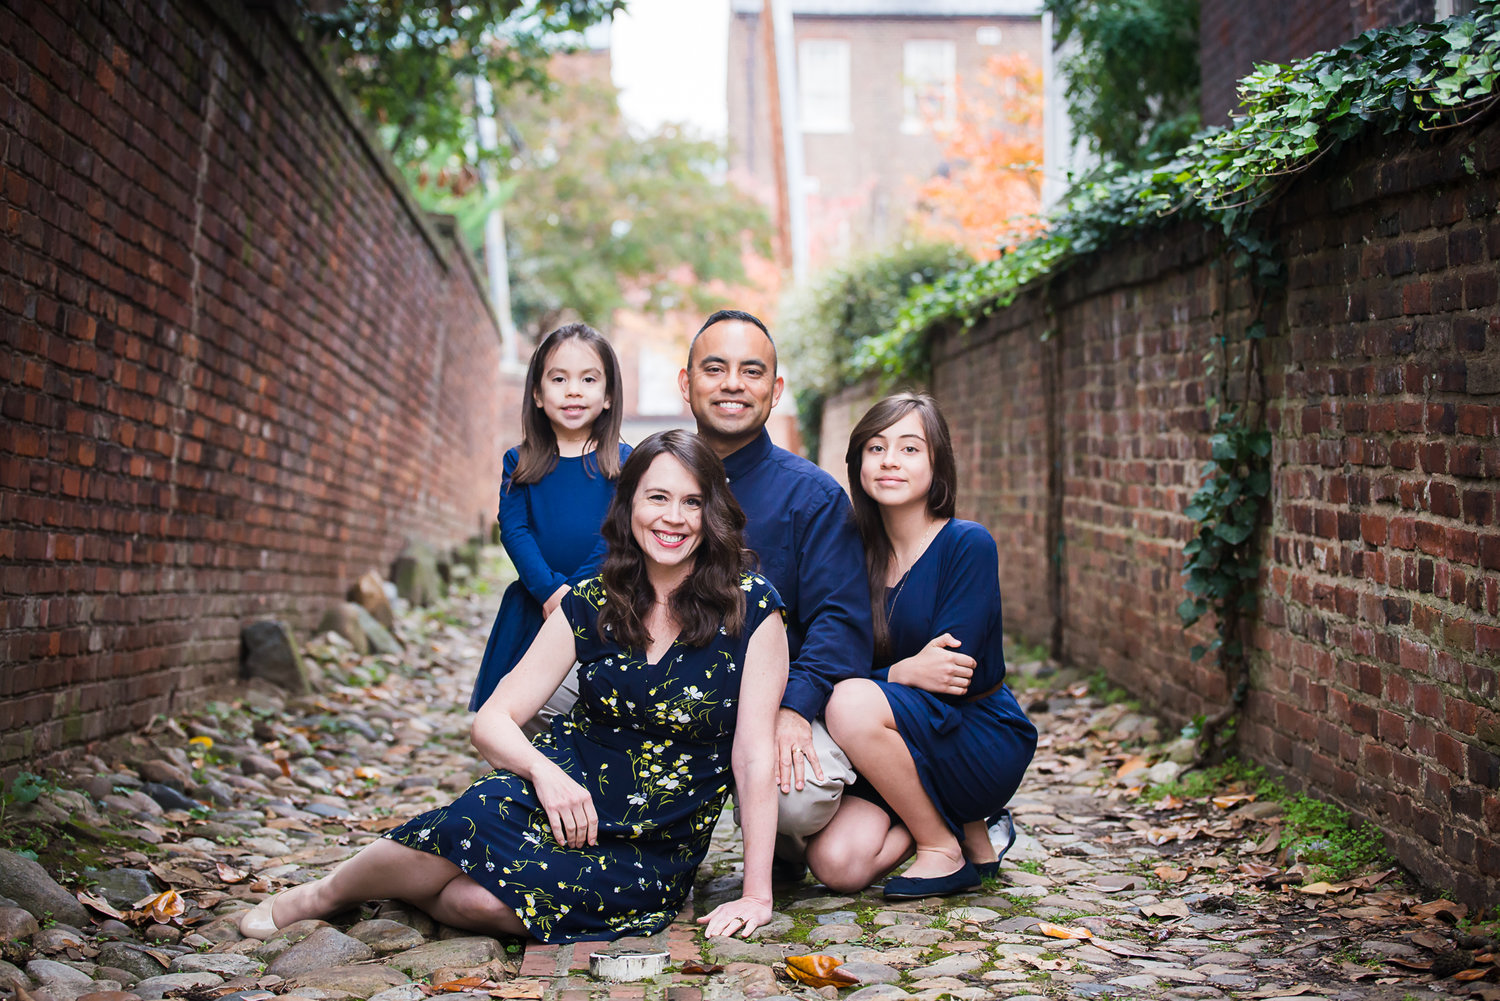 The P. Family in Old Town Alexandria